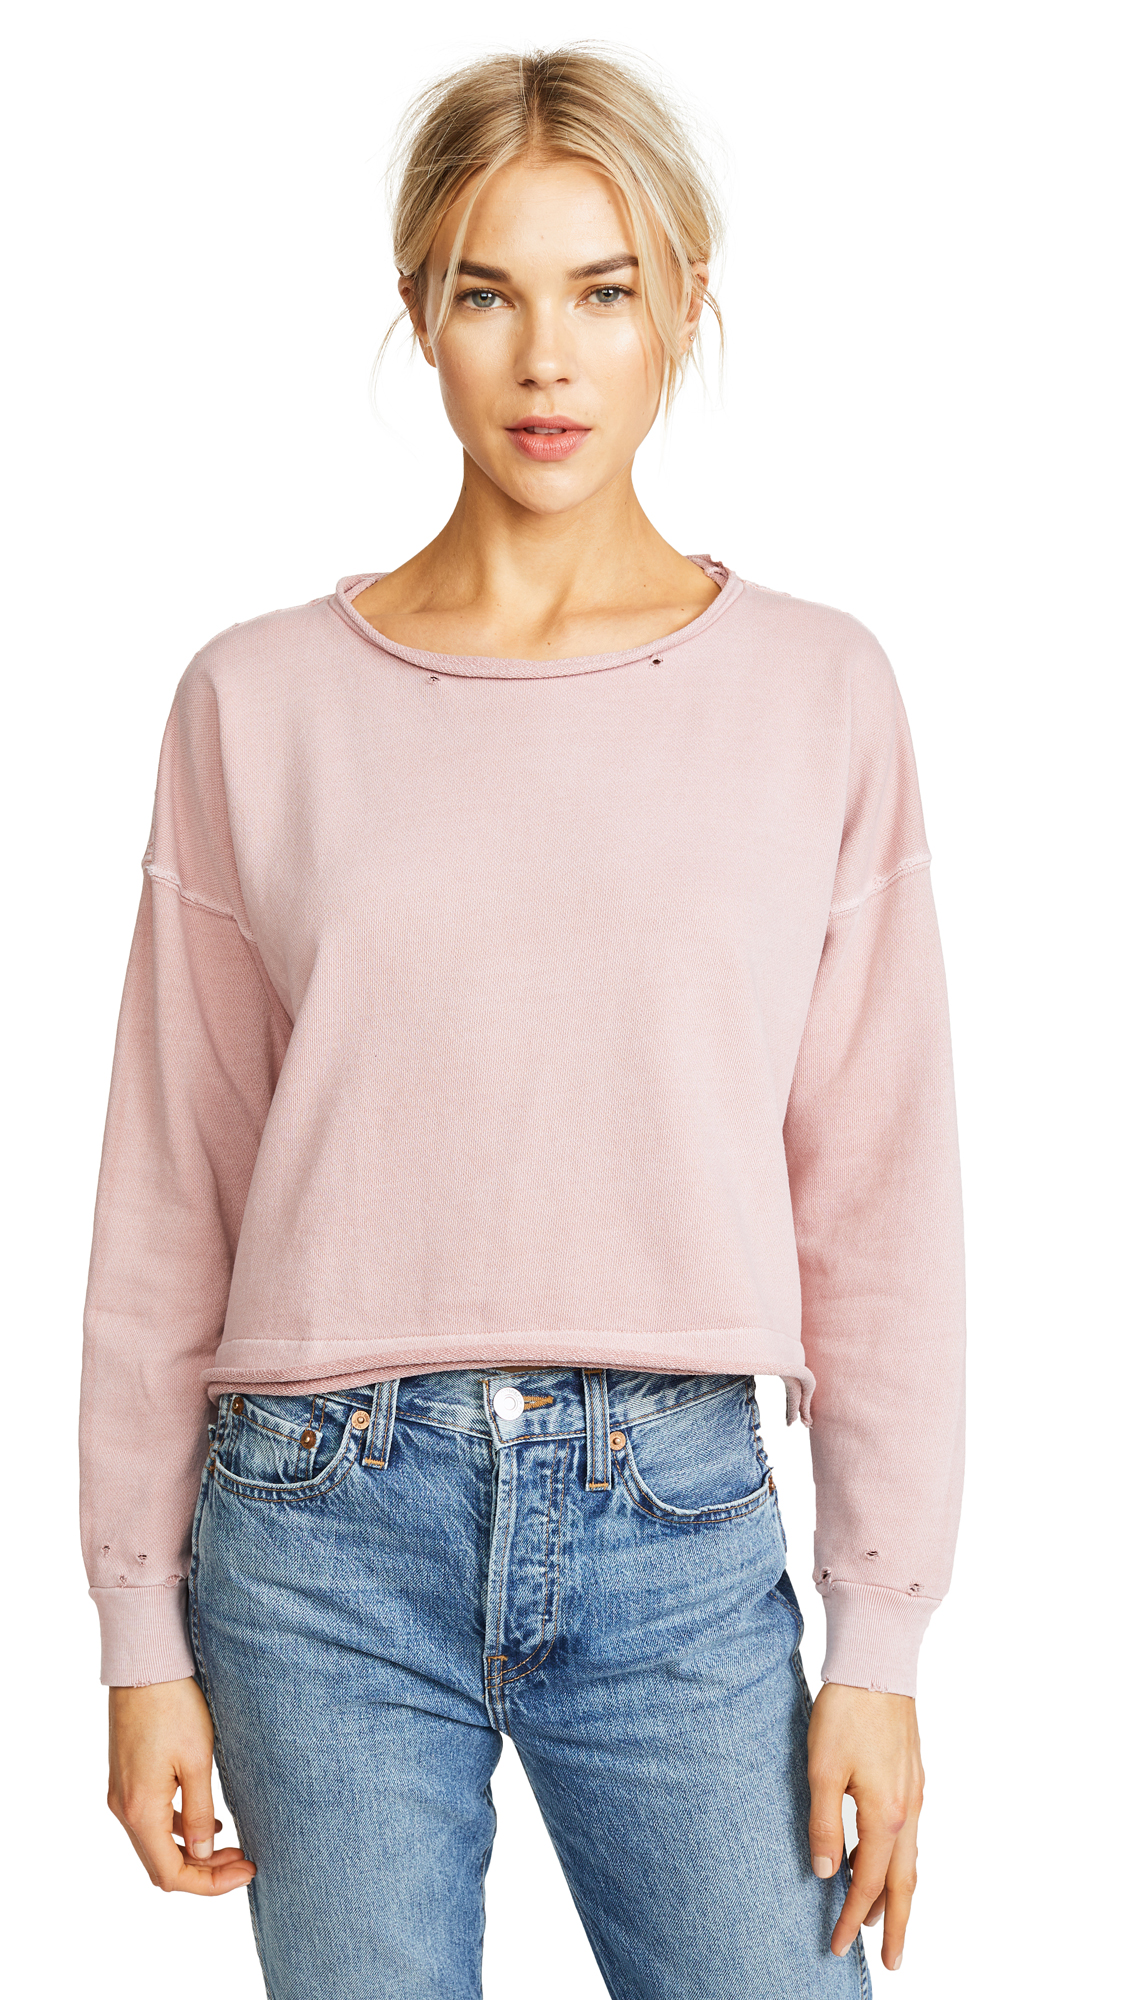 AMO Boxy Sweatshirt In Rose Gold With Destroy